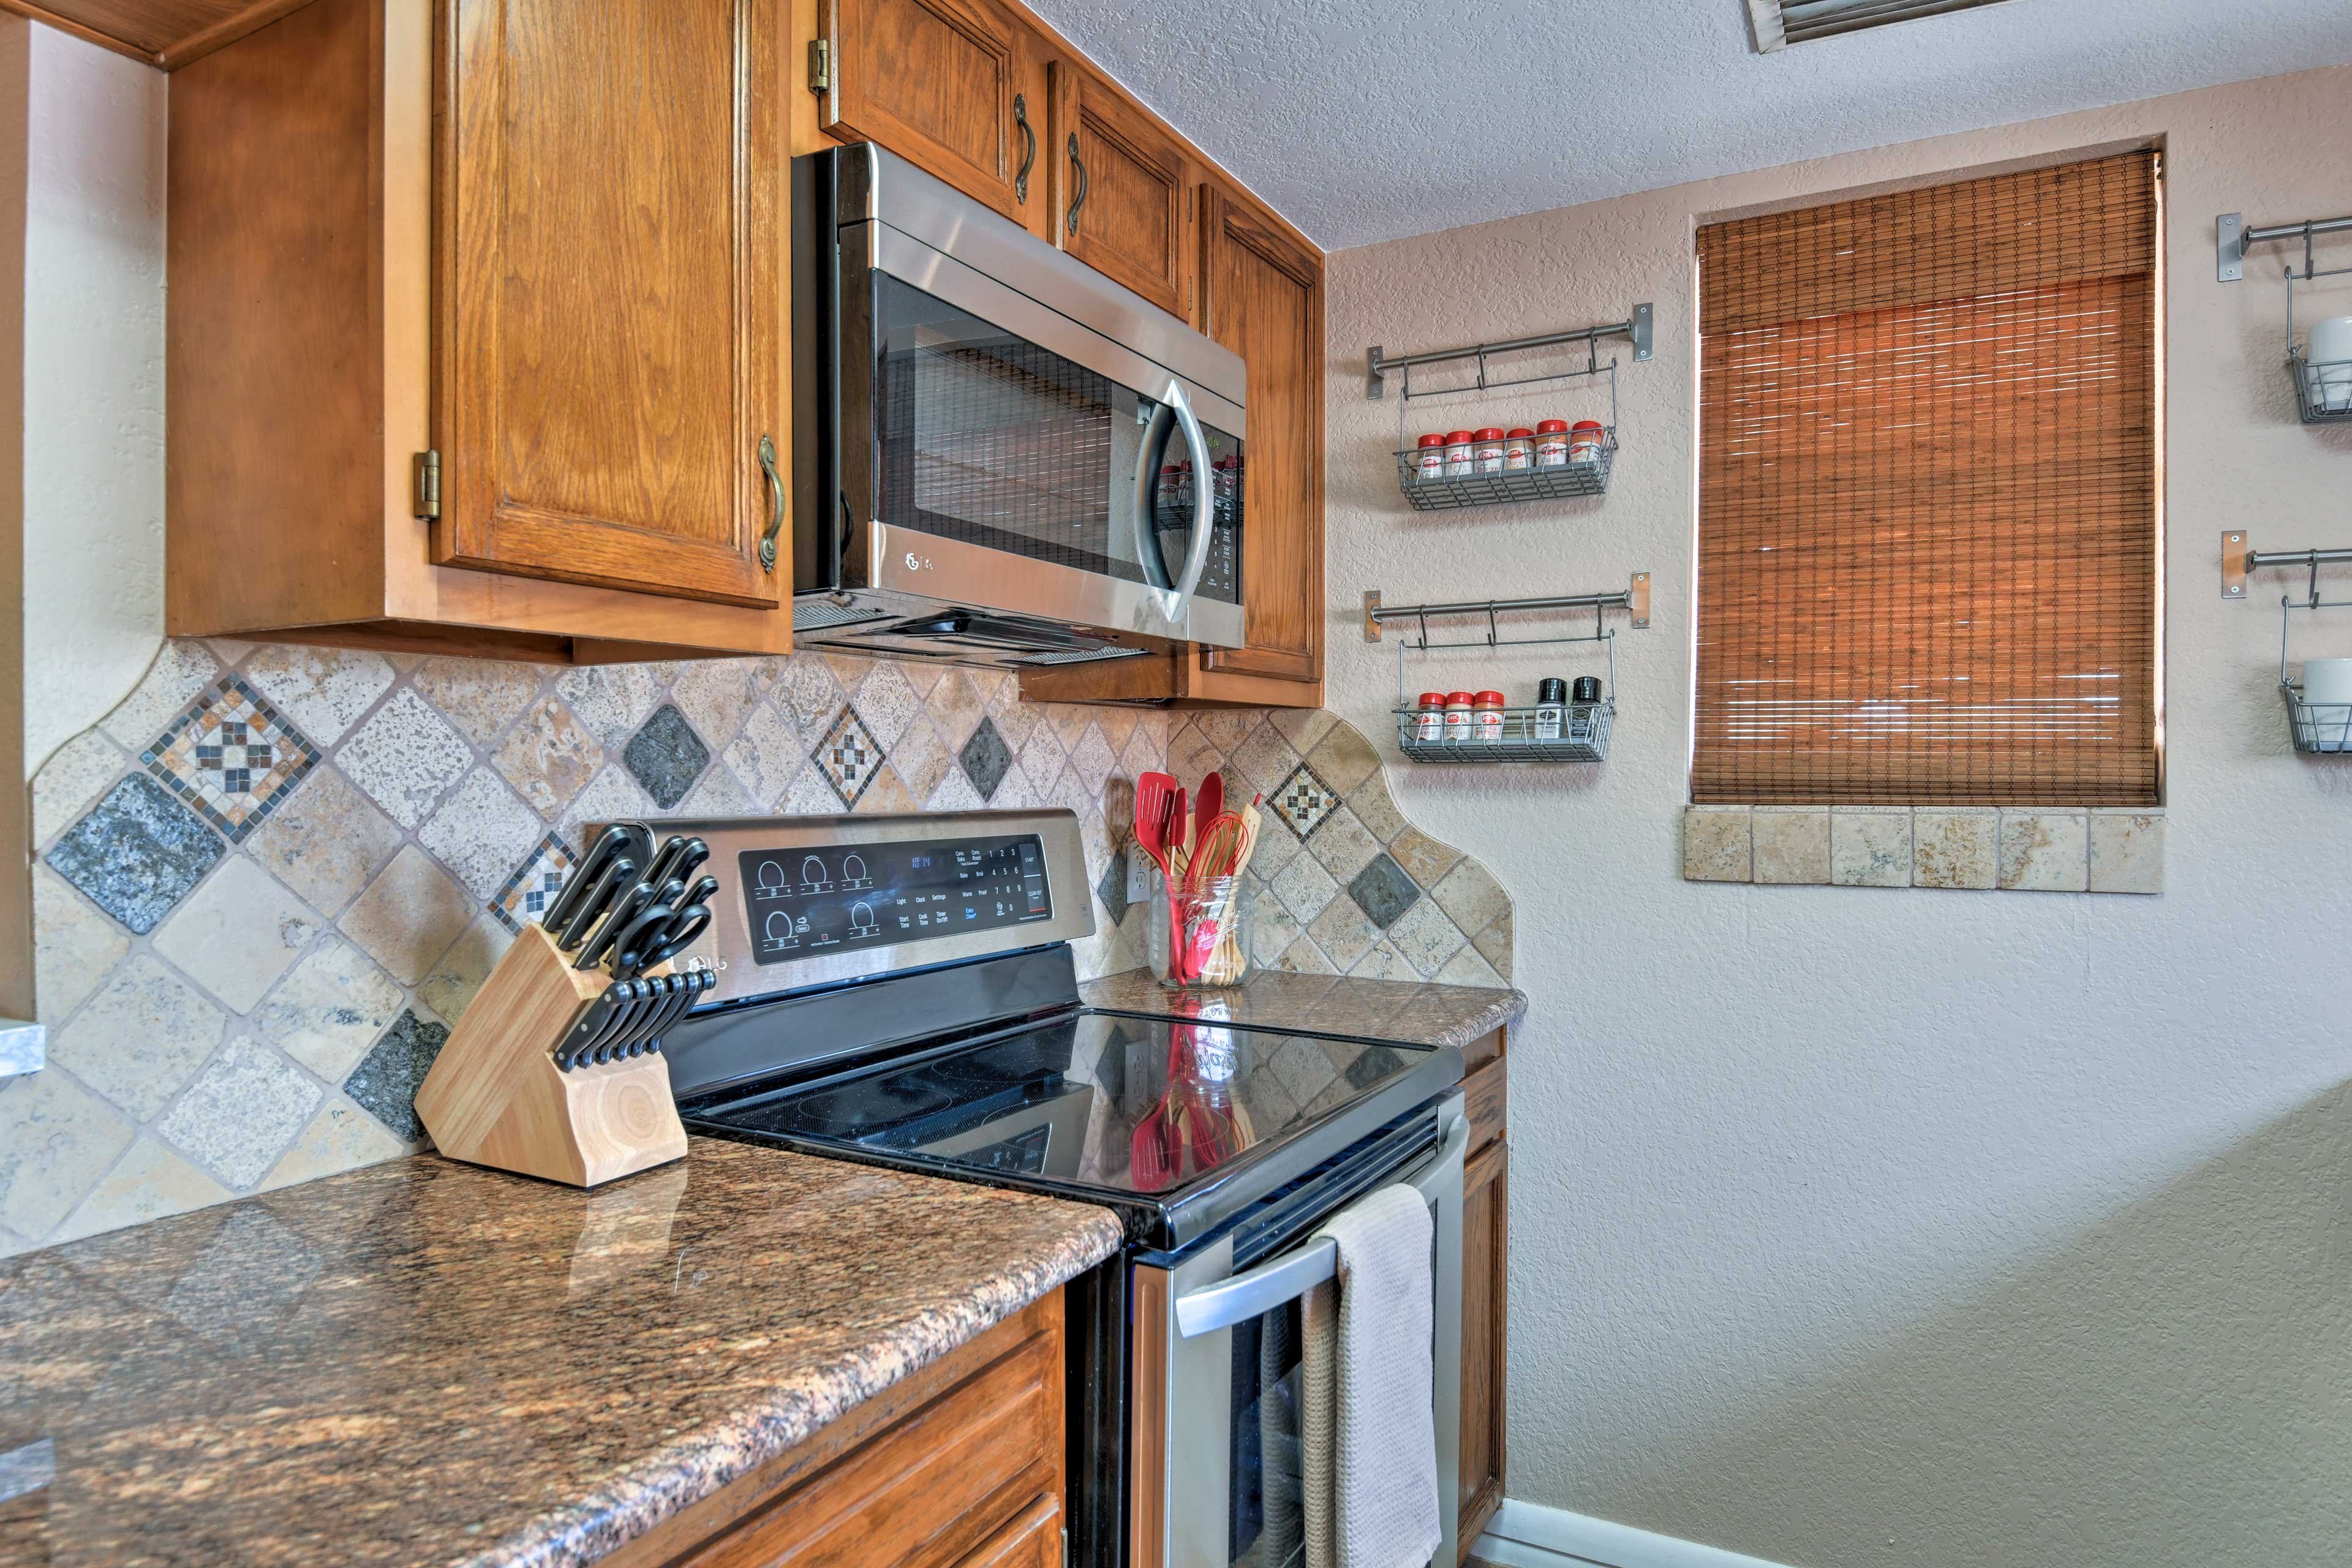 Utilize the stainless steel appliances and ample counter space.